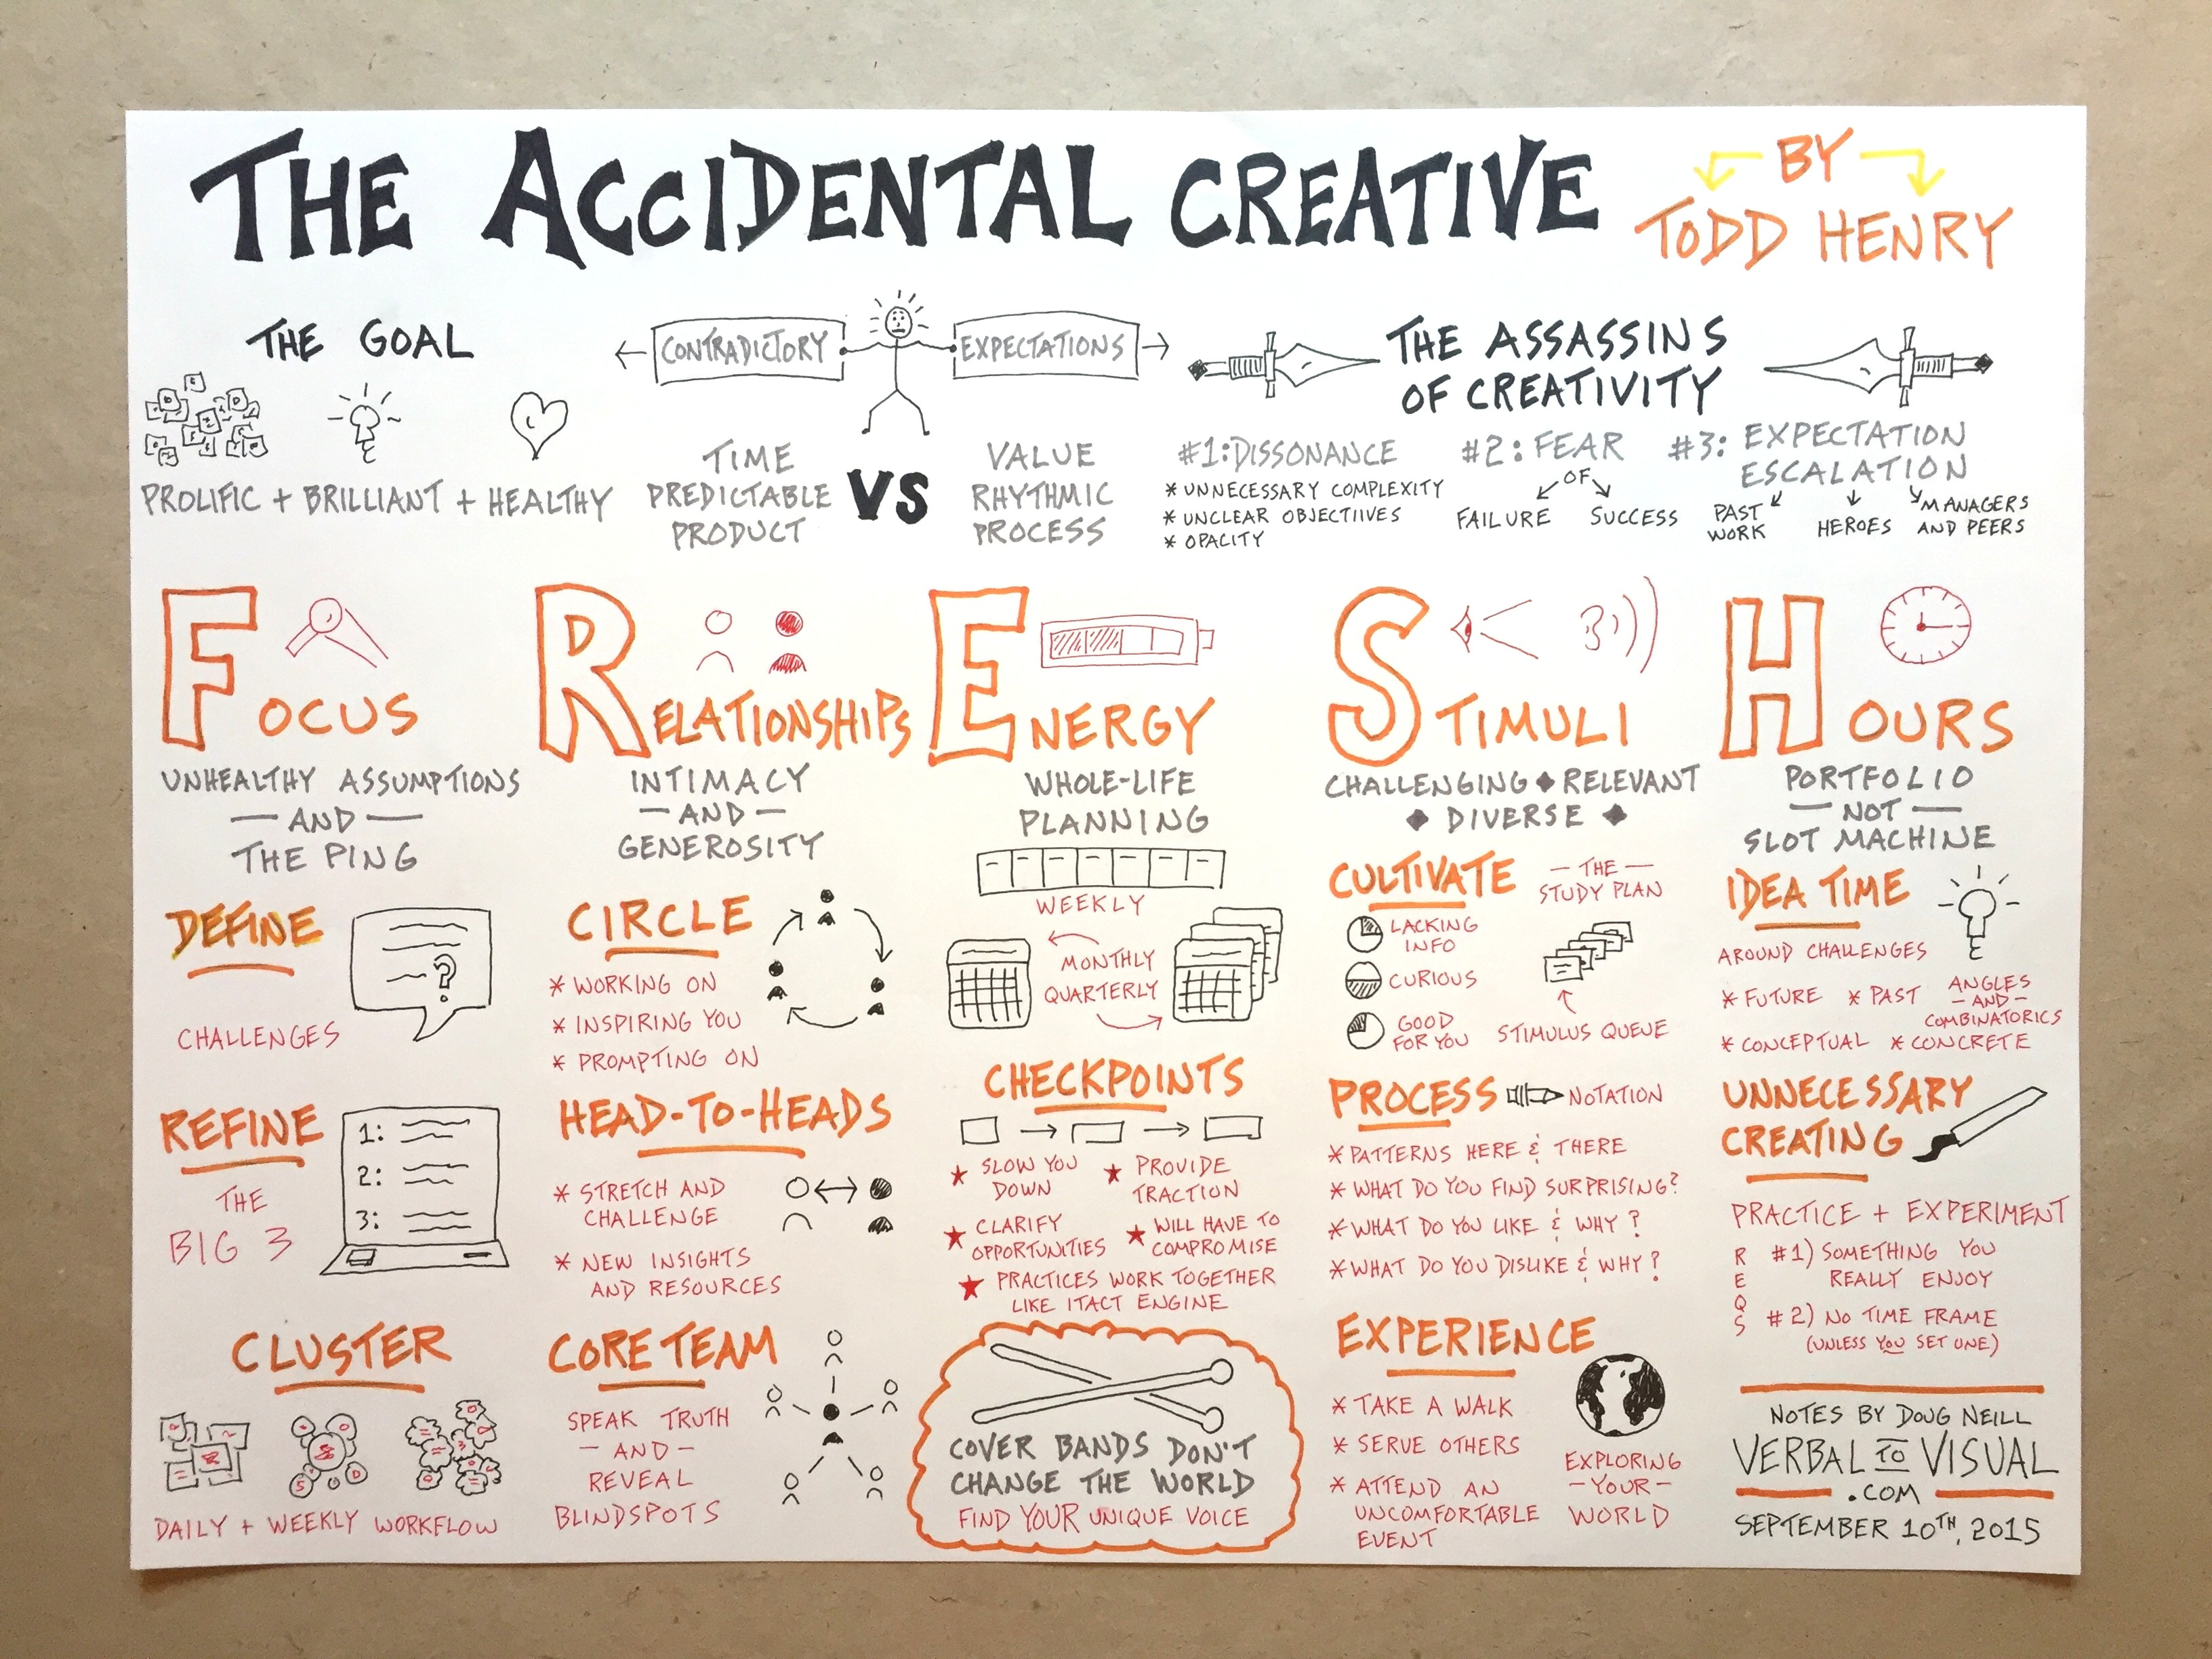 The Accidental Creative Sketchnotes - Todd Henry, Doug Neill, Verbal To Visual